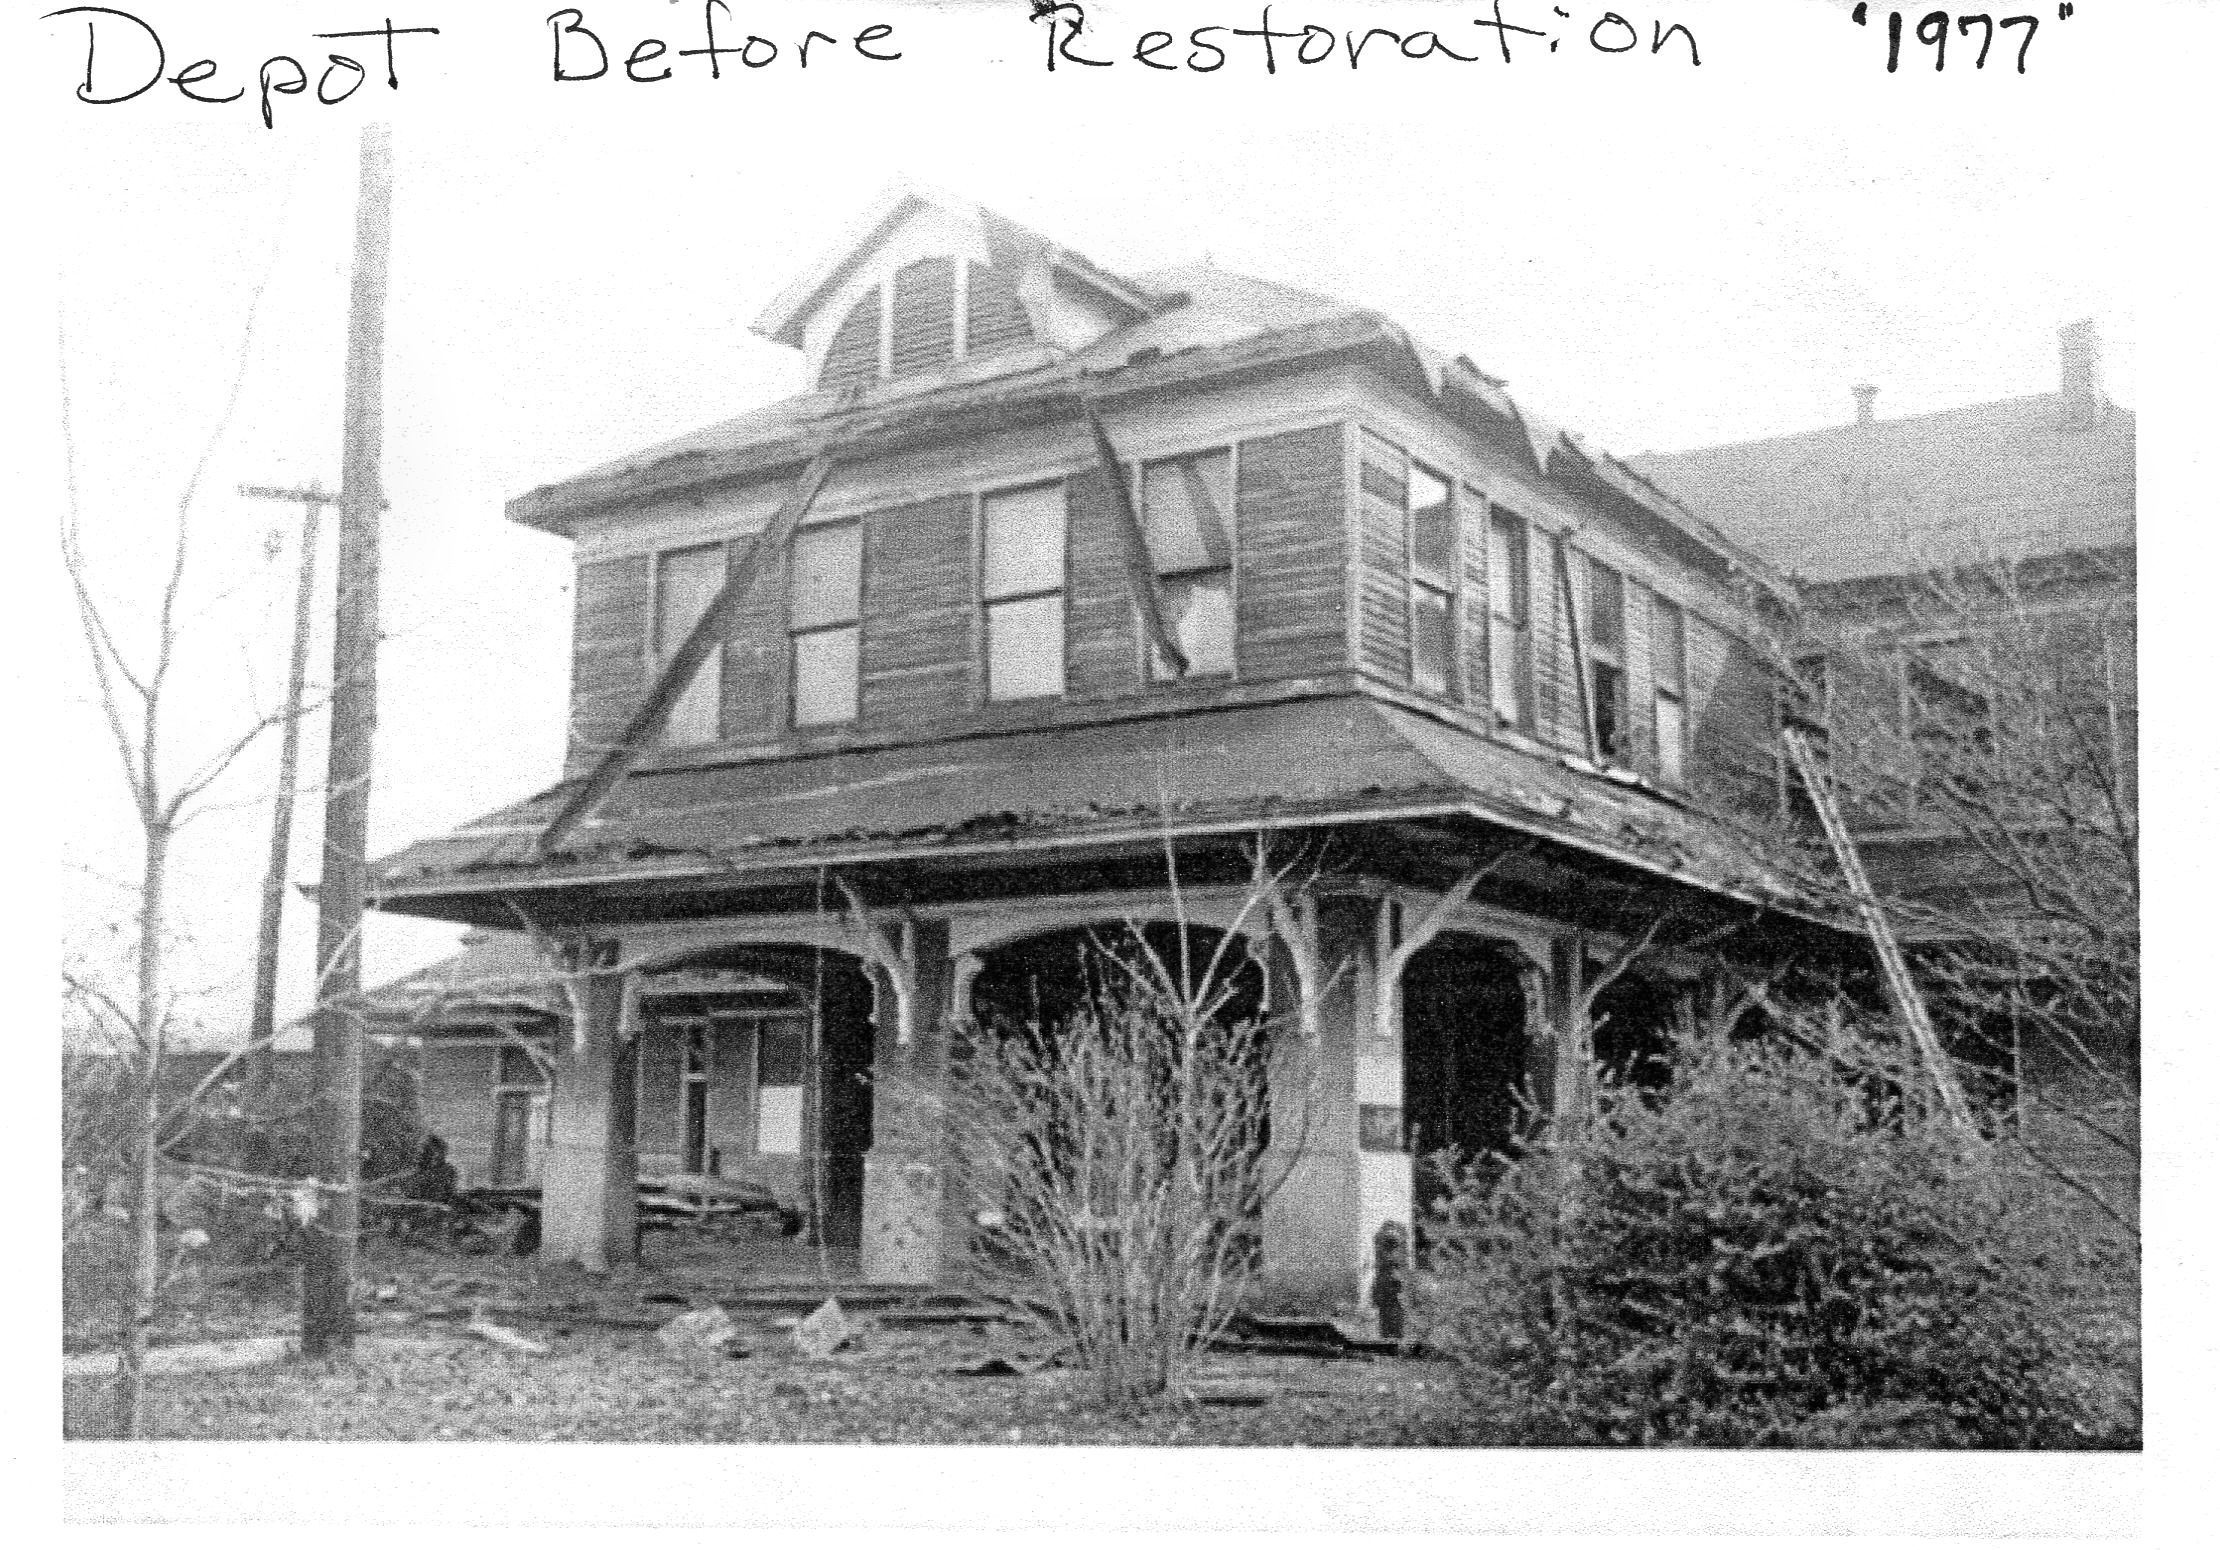 Restore L and N Depot before restoration  1  1977